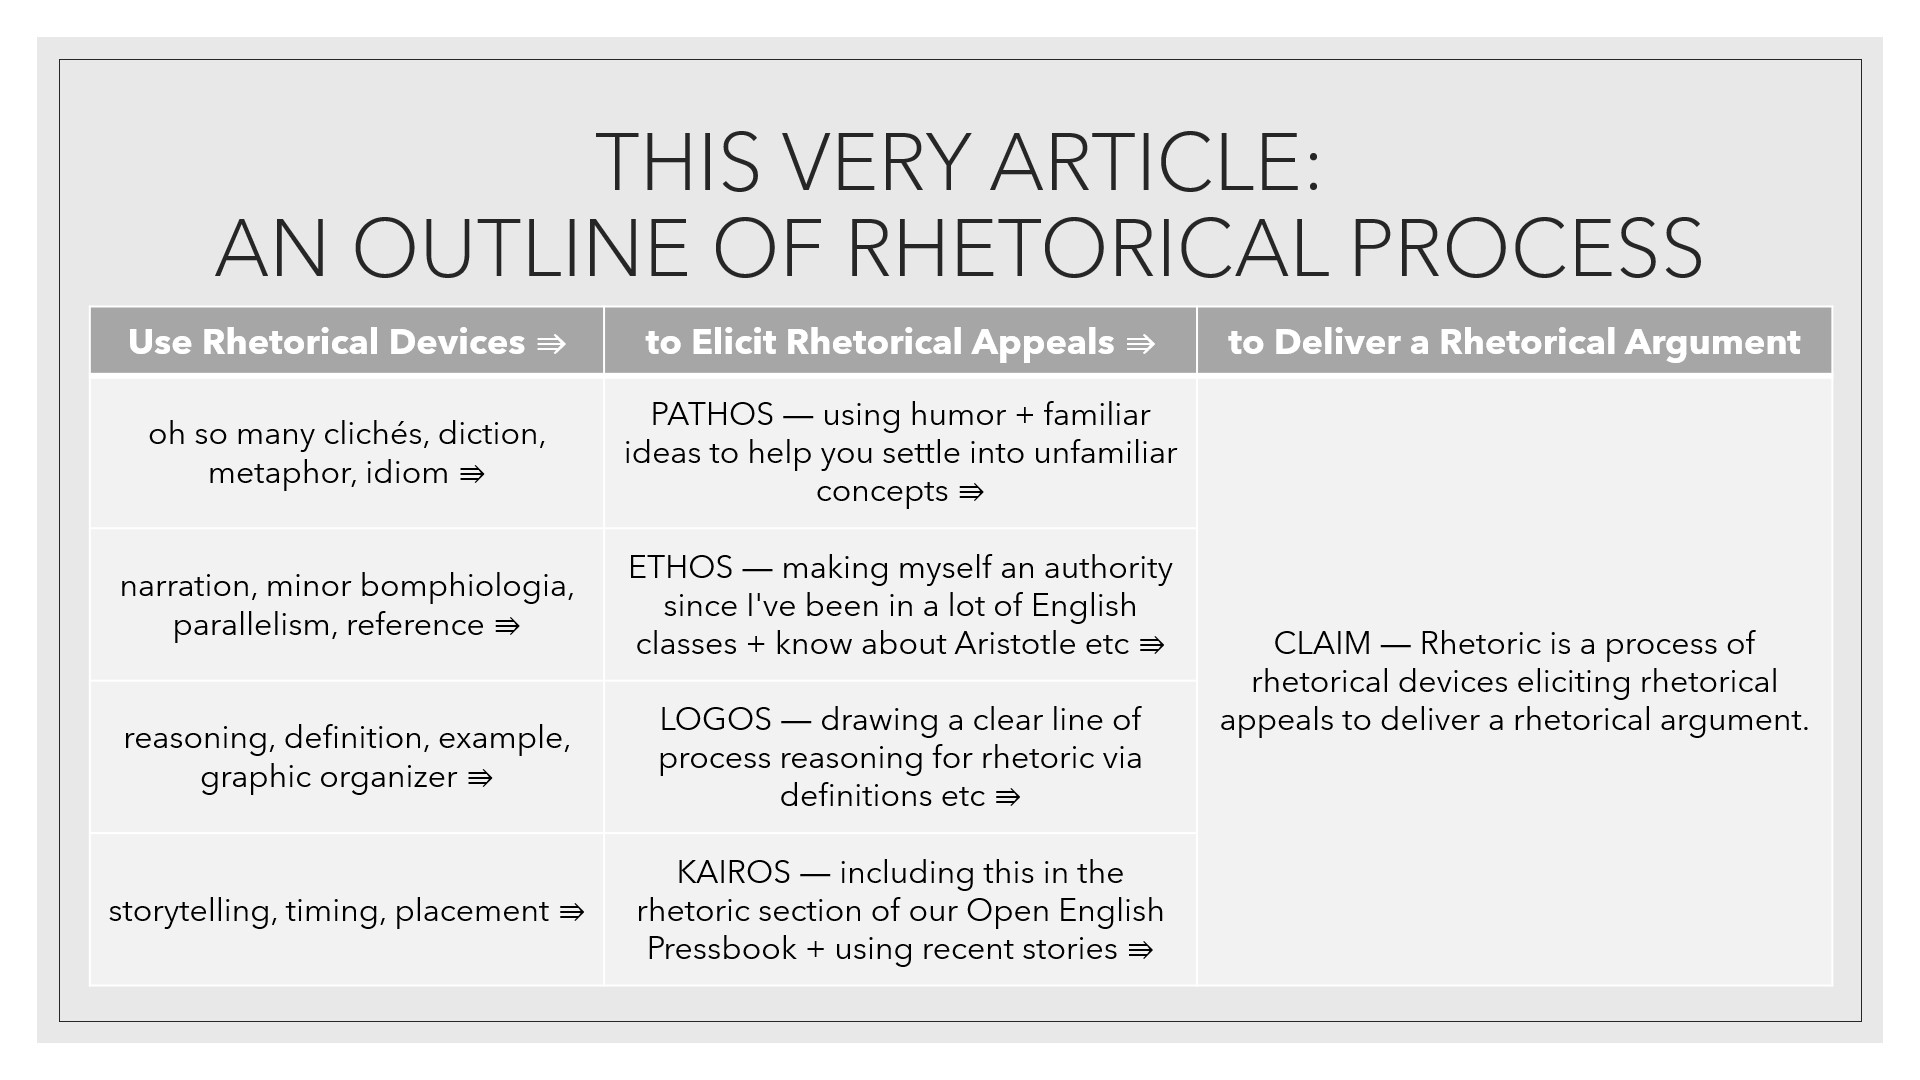 an outline showing how this article uses rhetorical devices such as cliches, narration, reference, reasoning, definition, examples, timing and placement to elicit pathos (humor), ethos (credibility through experience and knowledge), logos (clear line of reasoning), and kairos (rhetoric section of online textbook to make the claim that rhetoric is a process of rhetorical devices eliciting rhetorical appeals to deliver a rhetorical argument